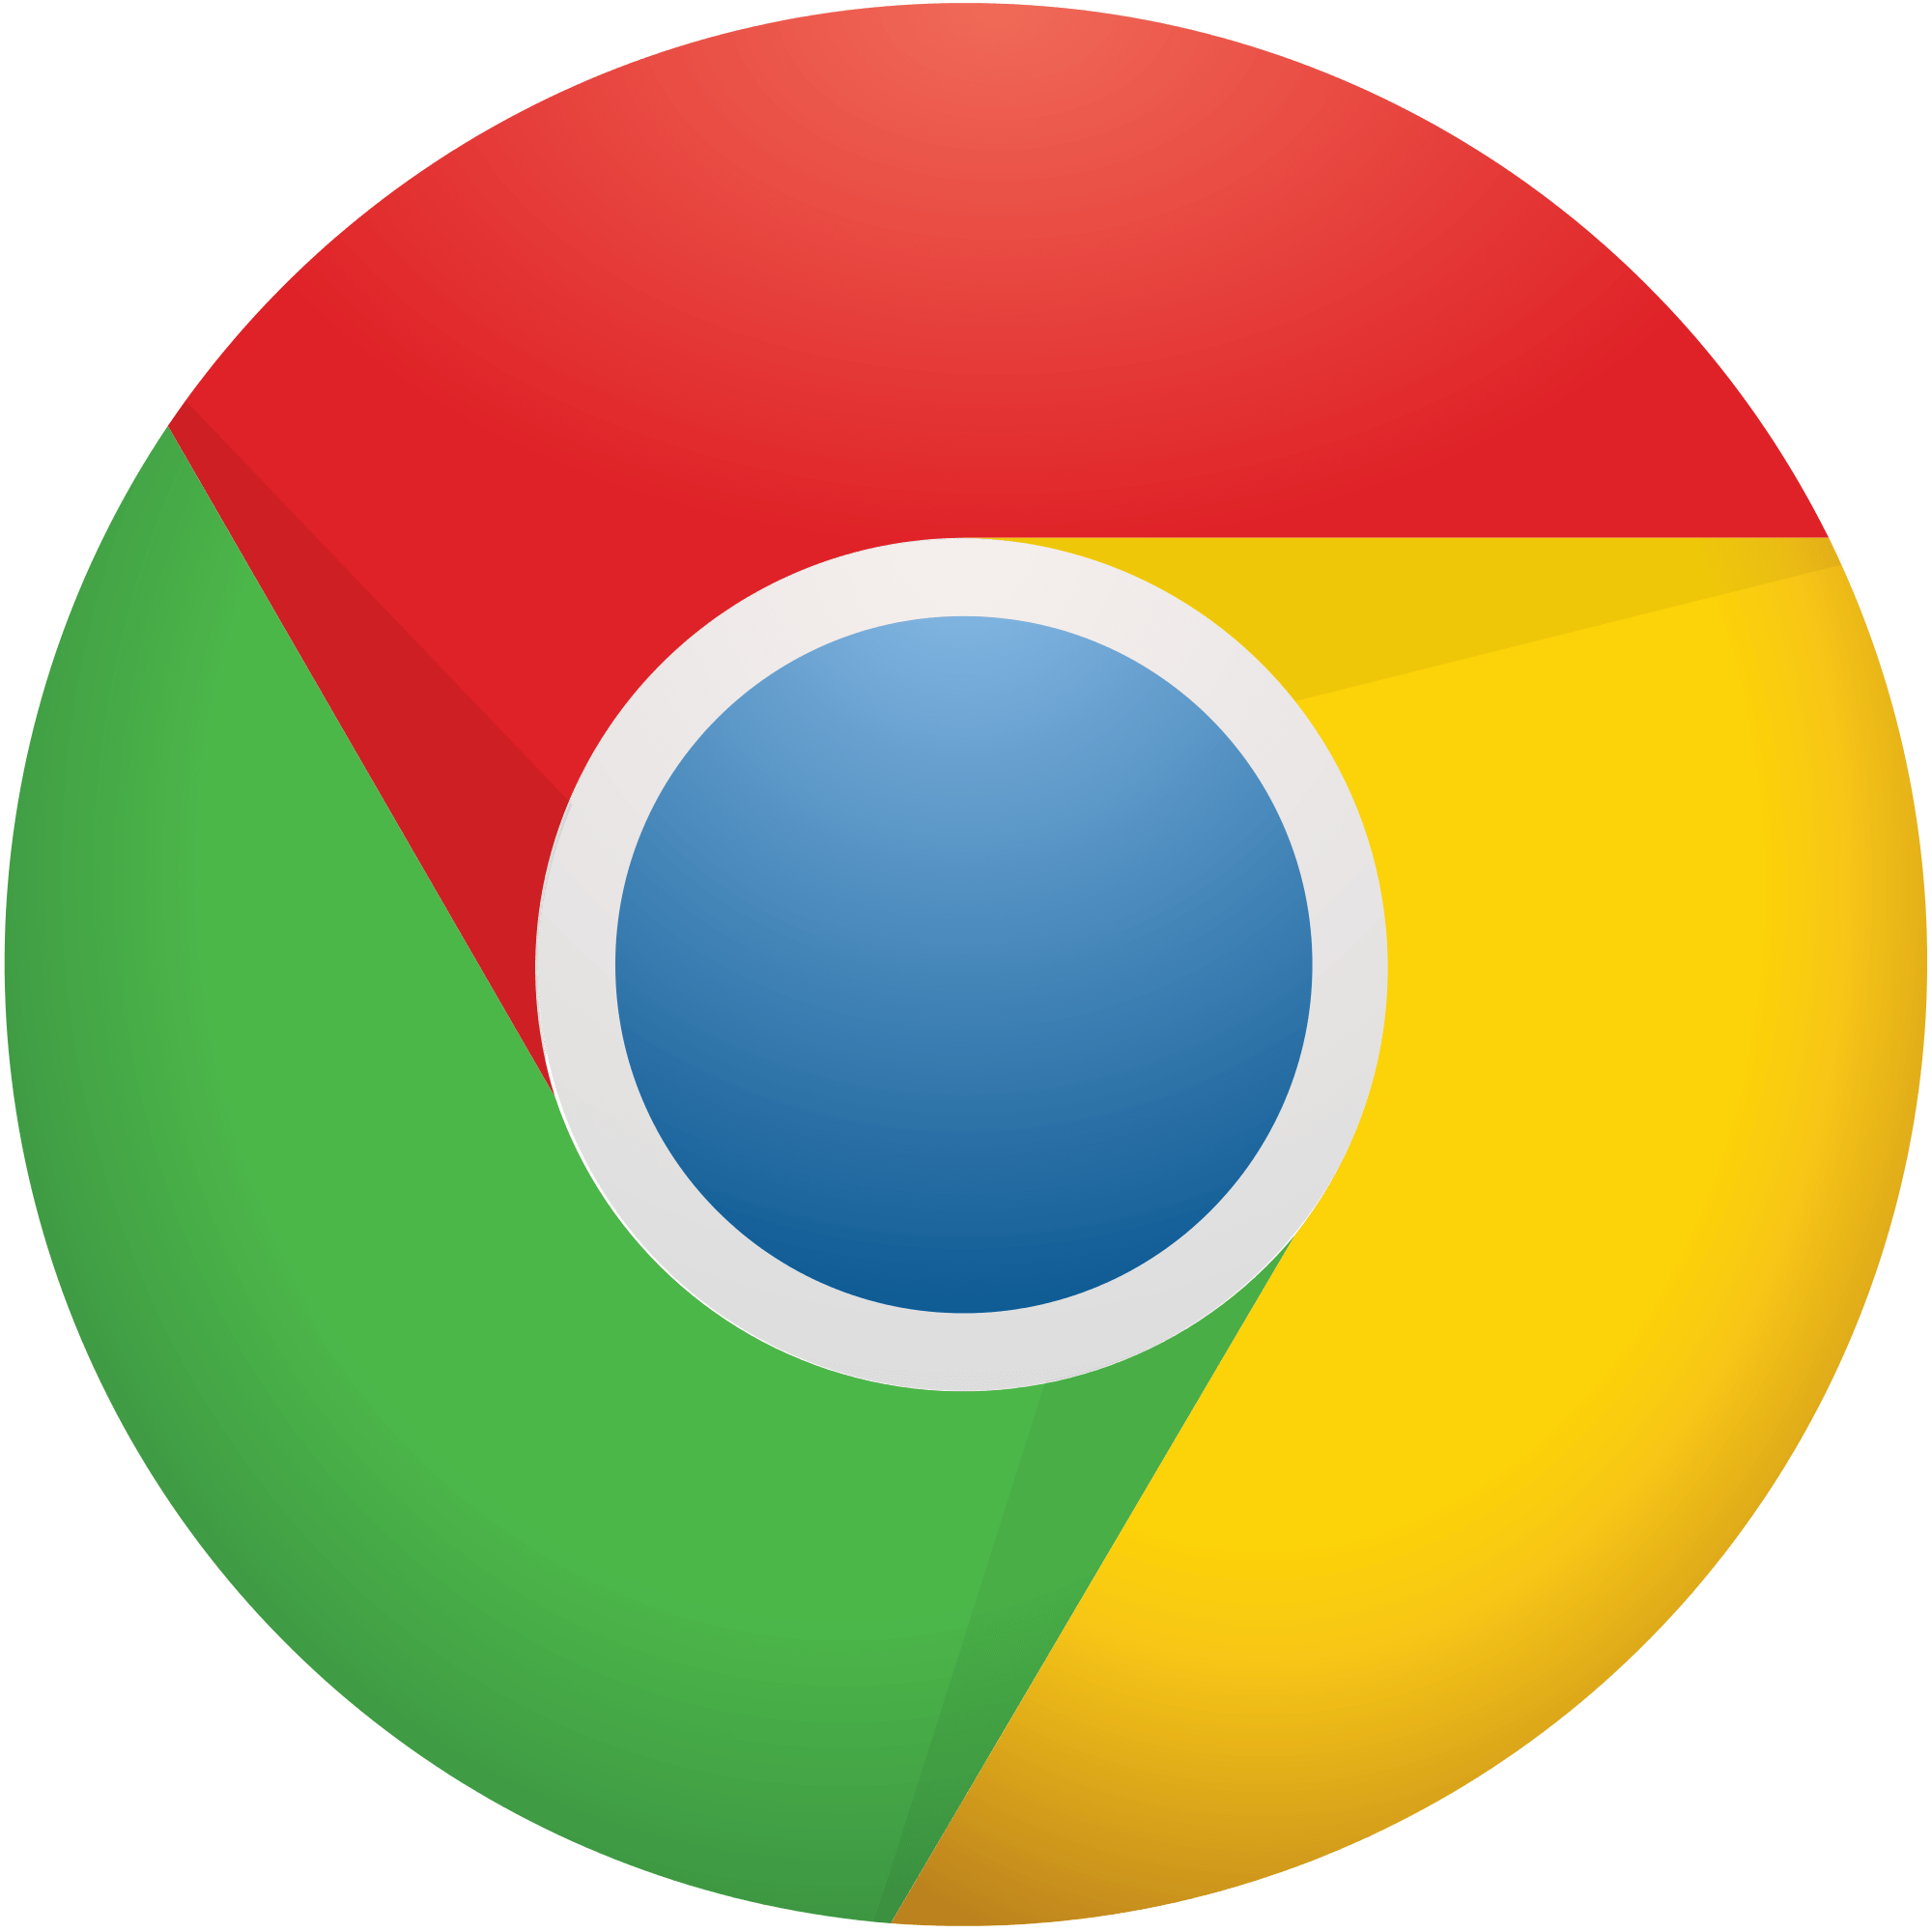 Google chrome symbol cliparts free Google Chrome Icon transparent PNG - StickPNG free